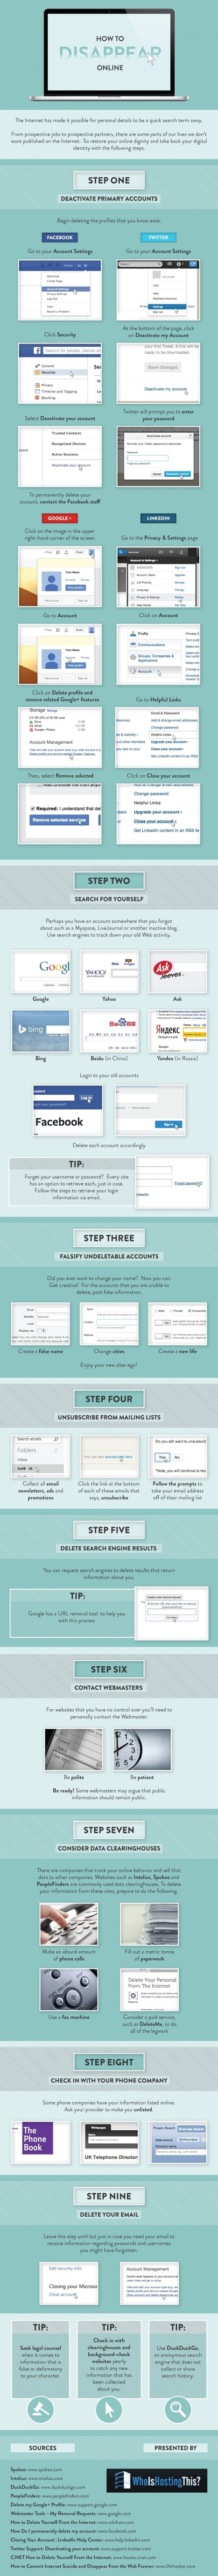 How to Disappear Online in 9 Steps [Infographic] | Social media | Scoop.it